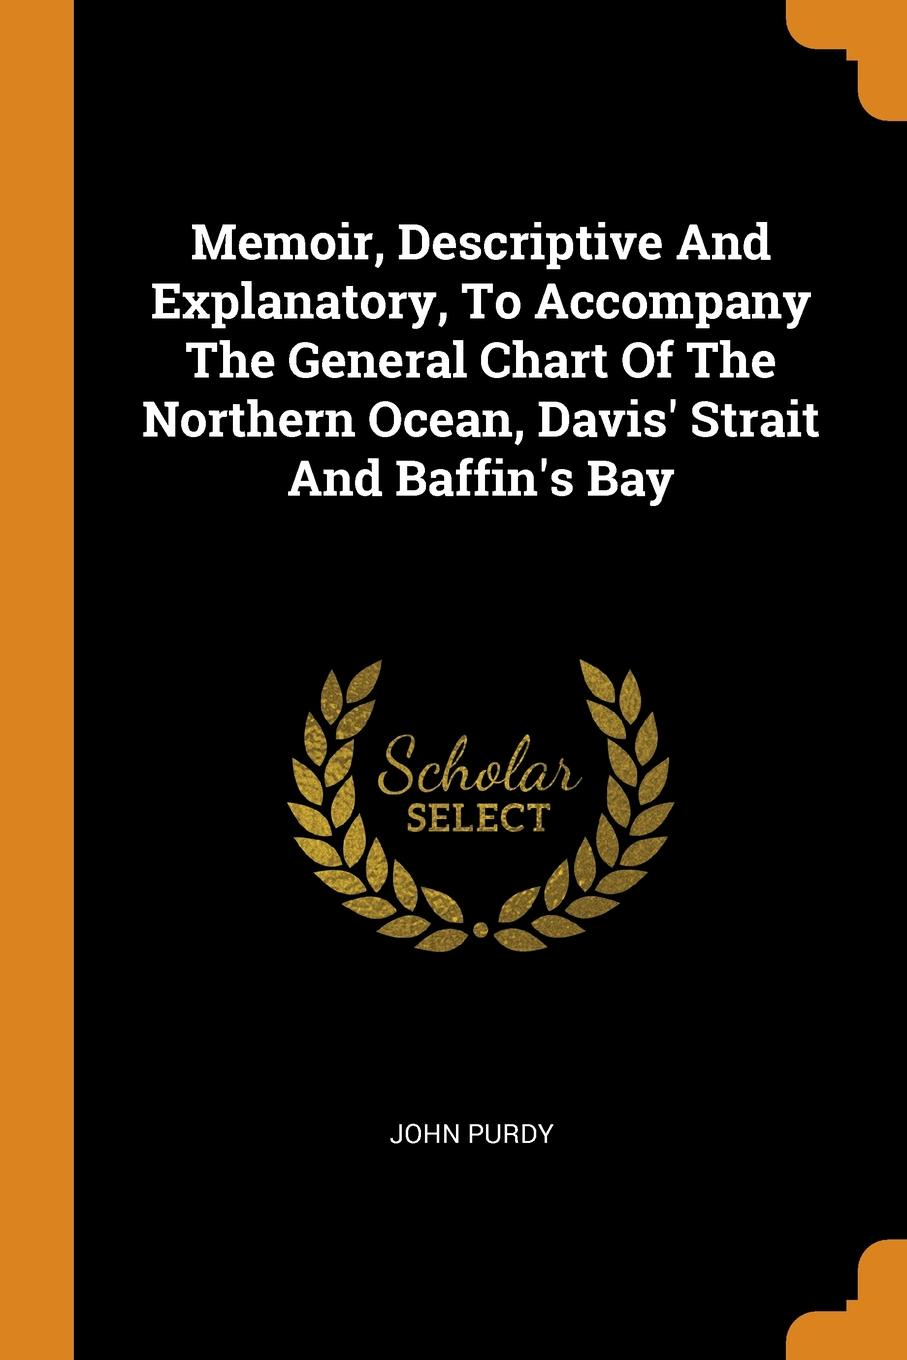 Memoir, Descriptive And Explanatory, To Accompany The General Chart Of The Northern Ocean, Davis. Strait And Baffin.s Bay